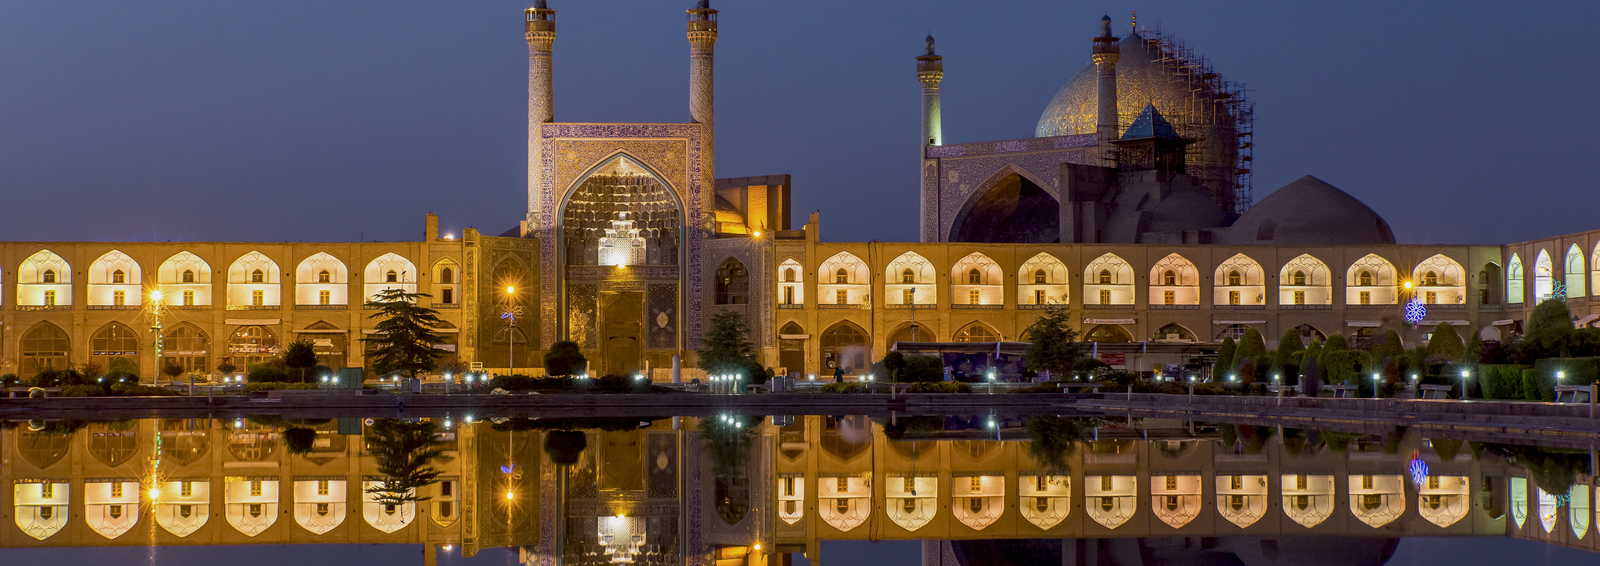 The Shah Mosque in Isfahan, Iran